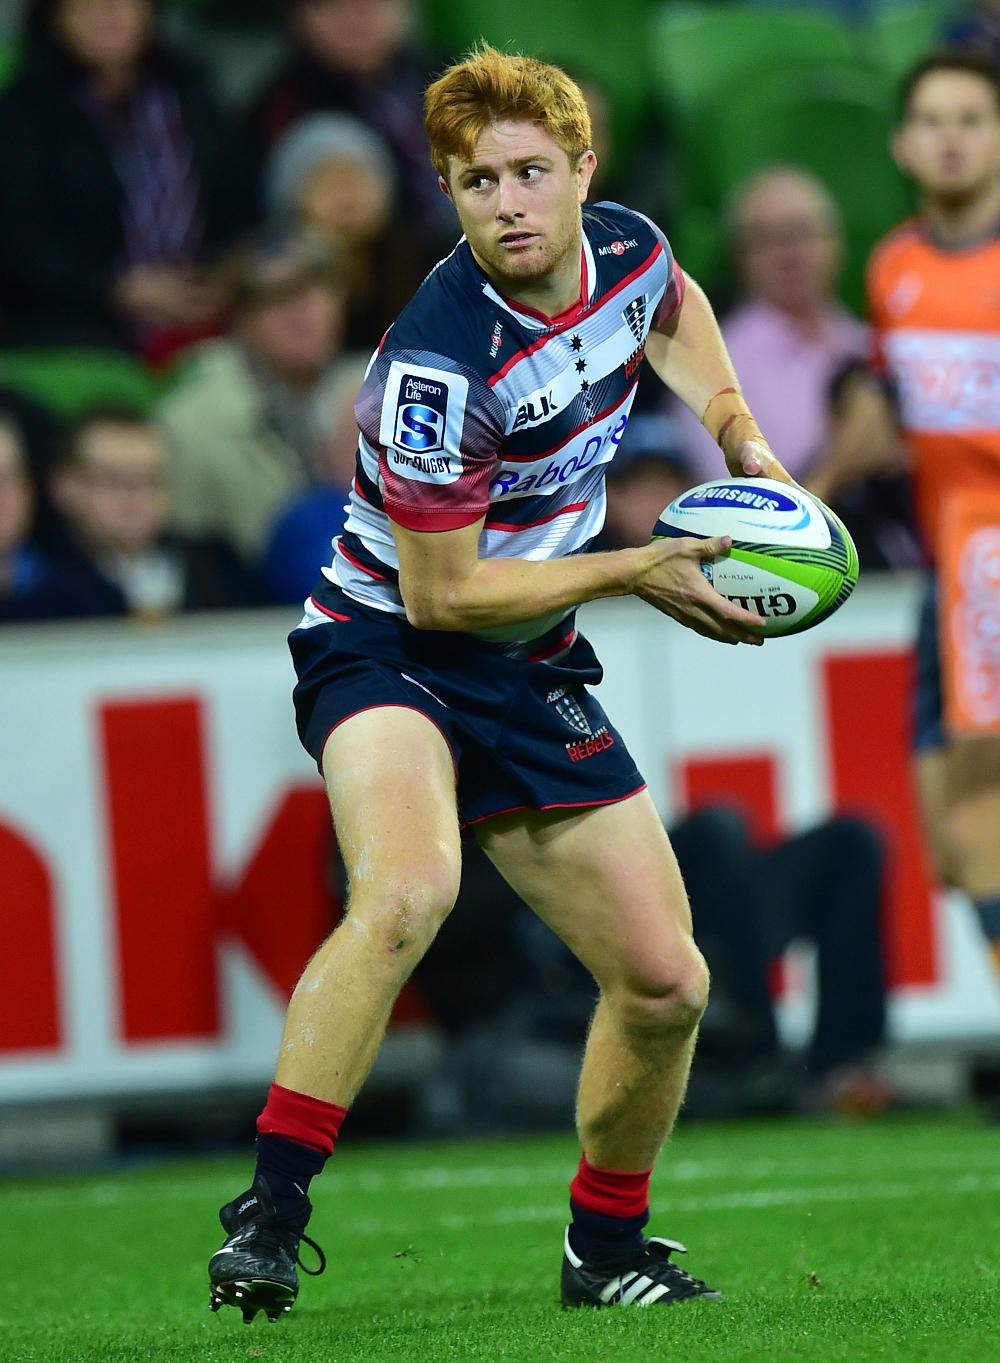 Melbourne Rebels player Nick Stirzaker passes the ball